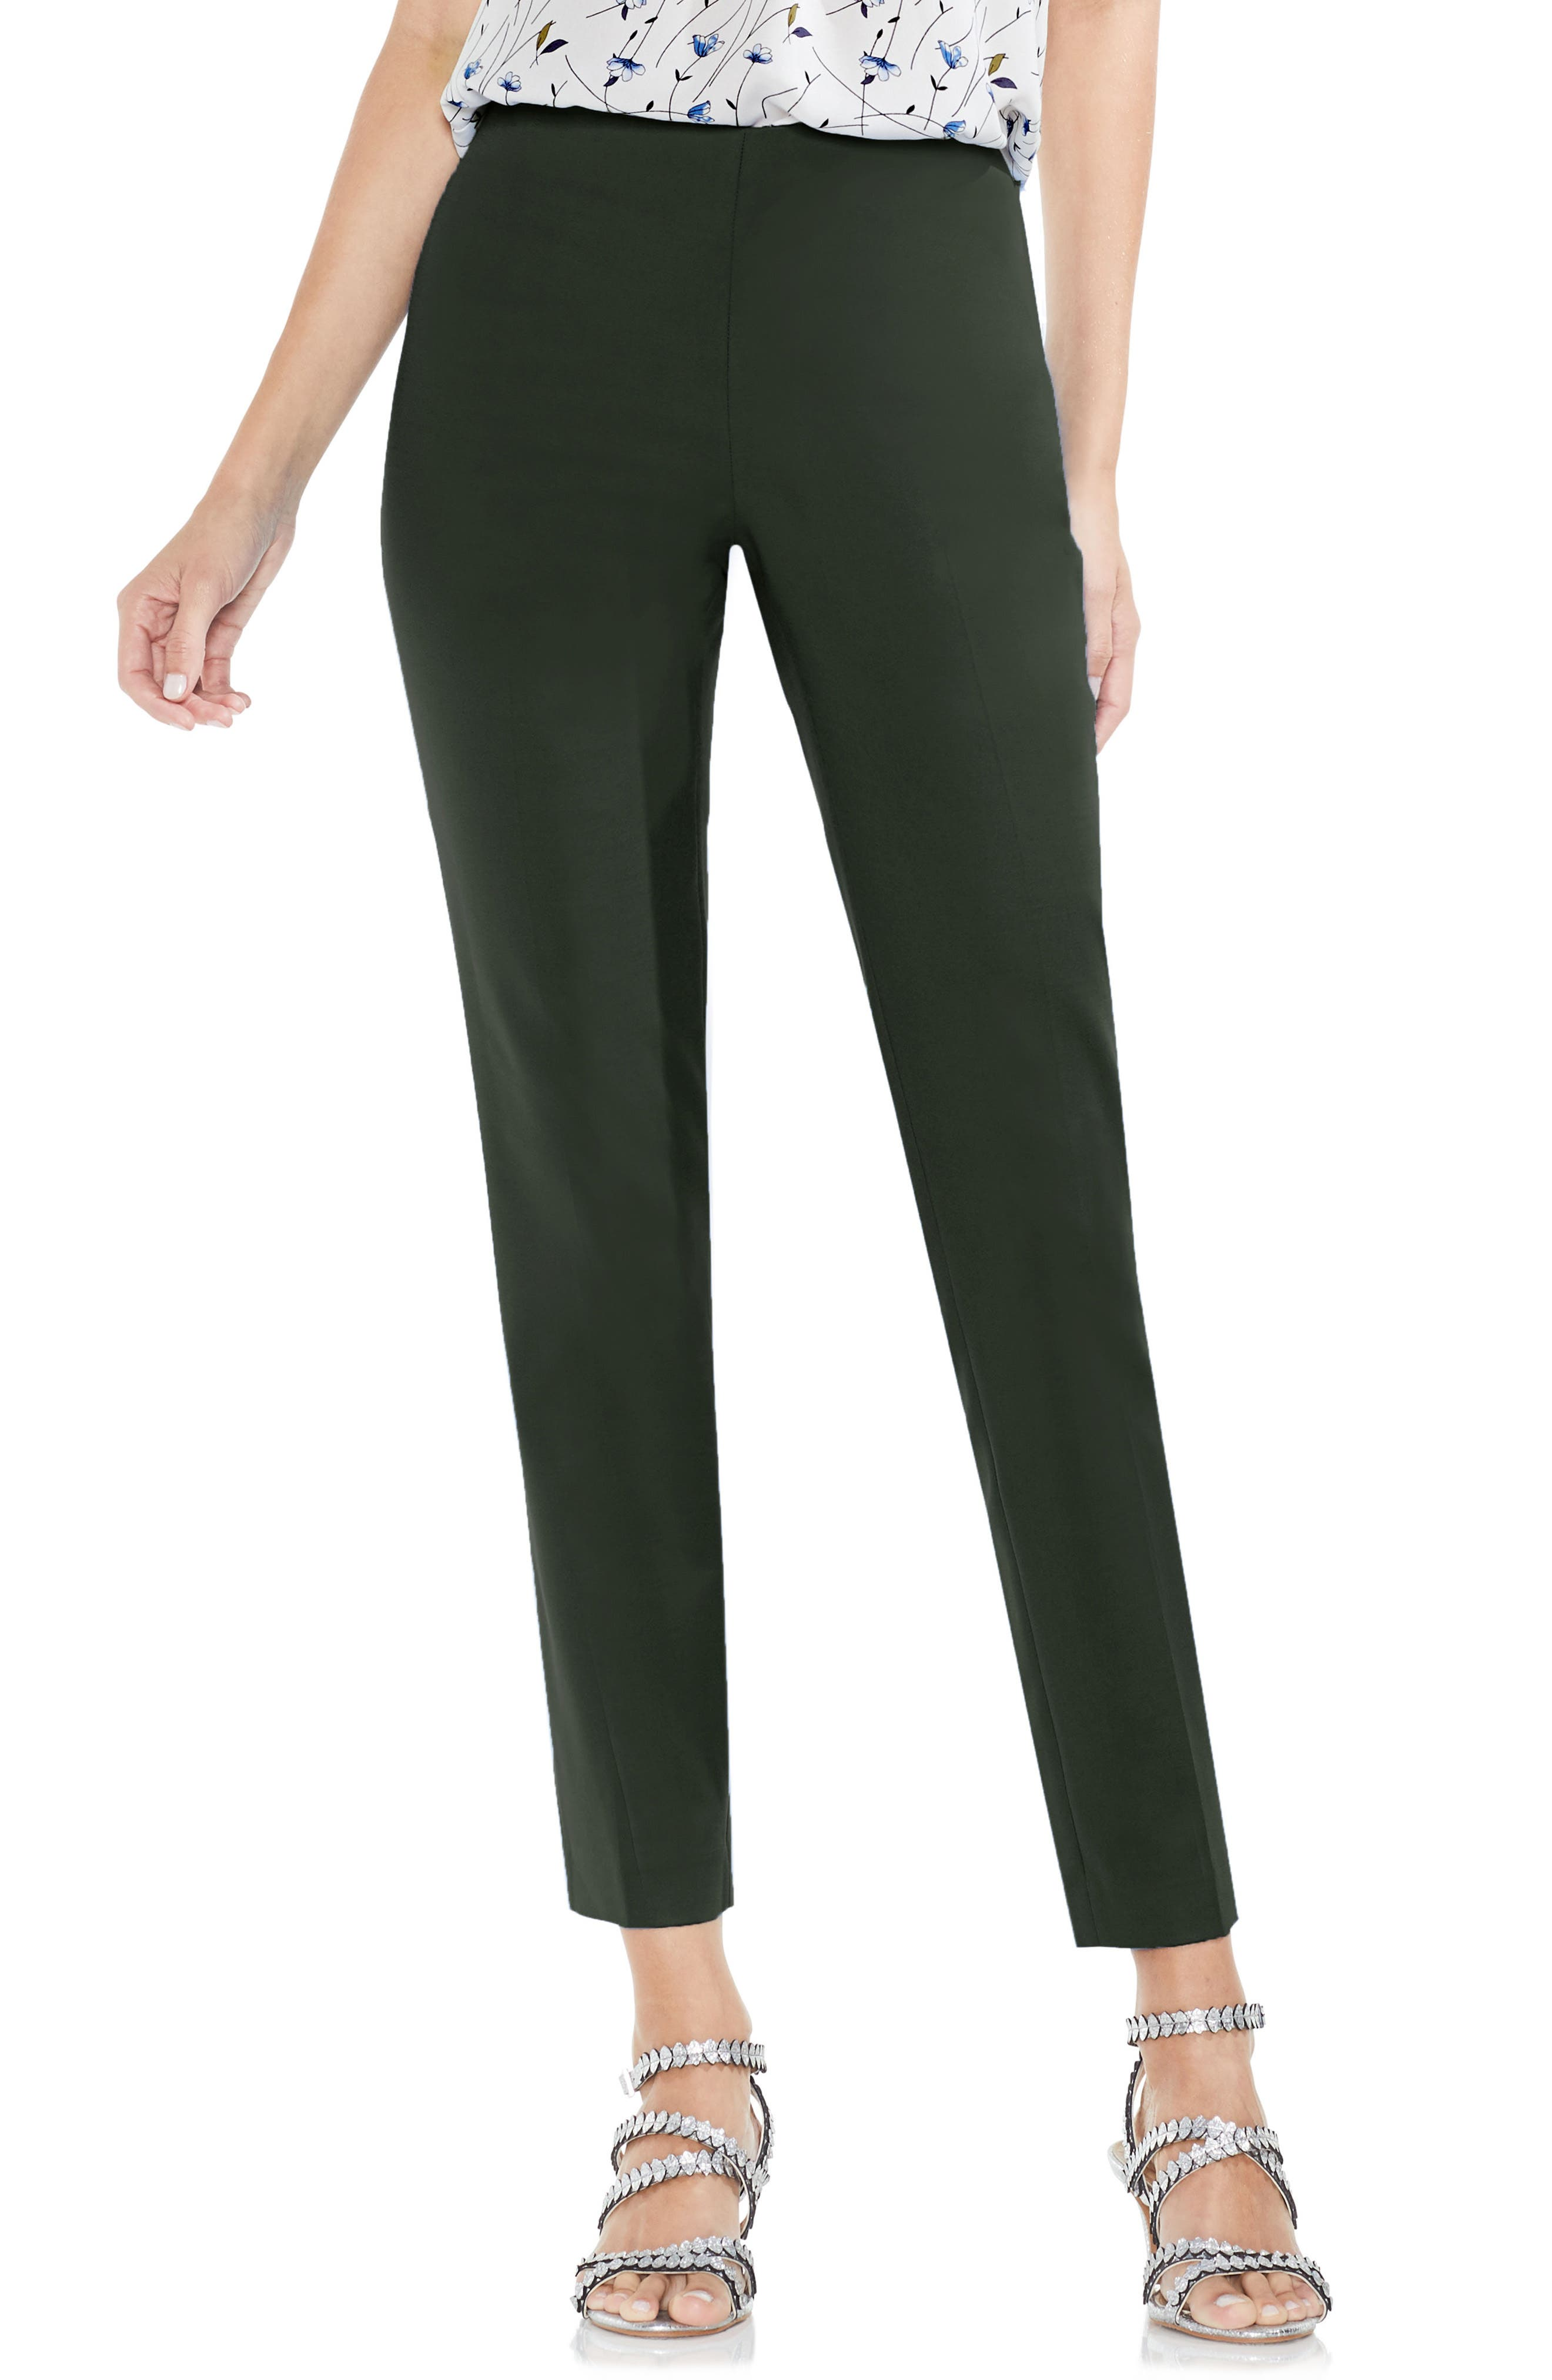 Alternate Image 1 Selected - Vince Camuto Side Zip Double Weave Pants (Regular & Petite)